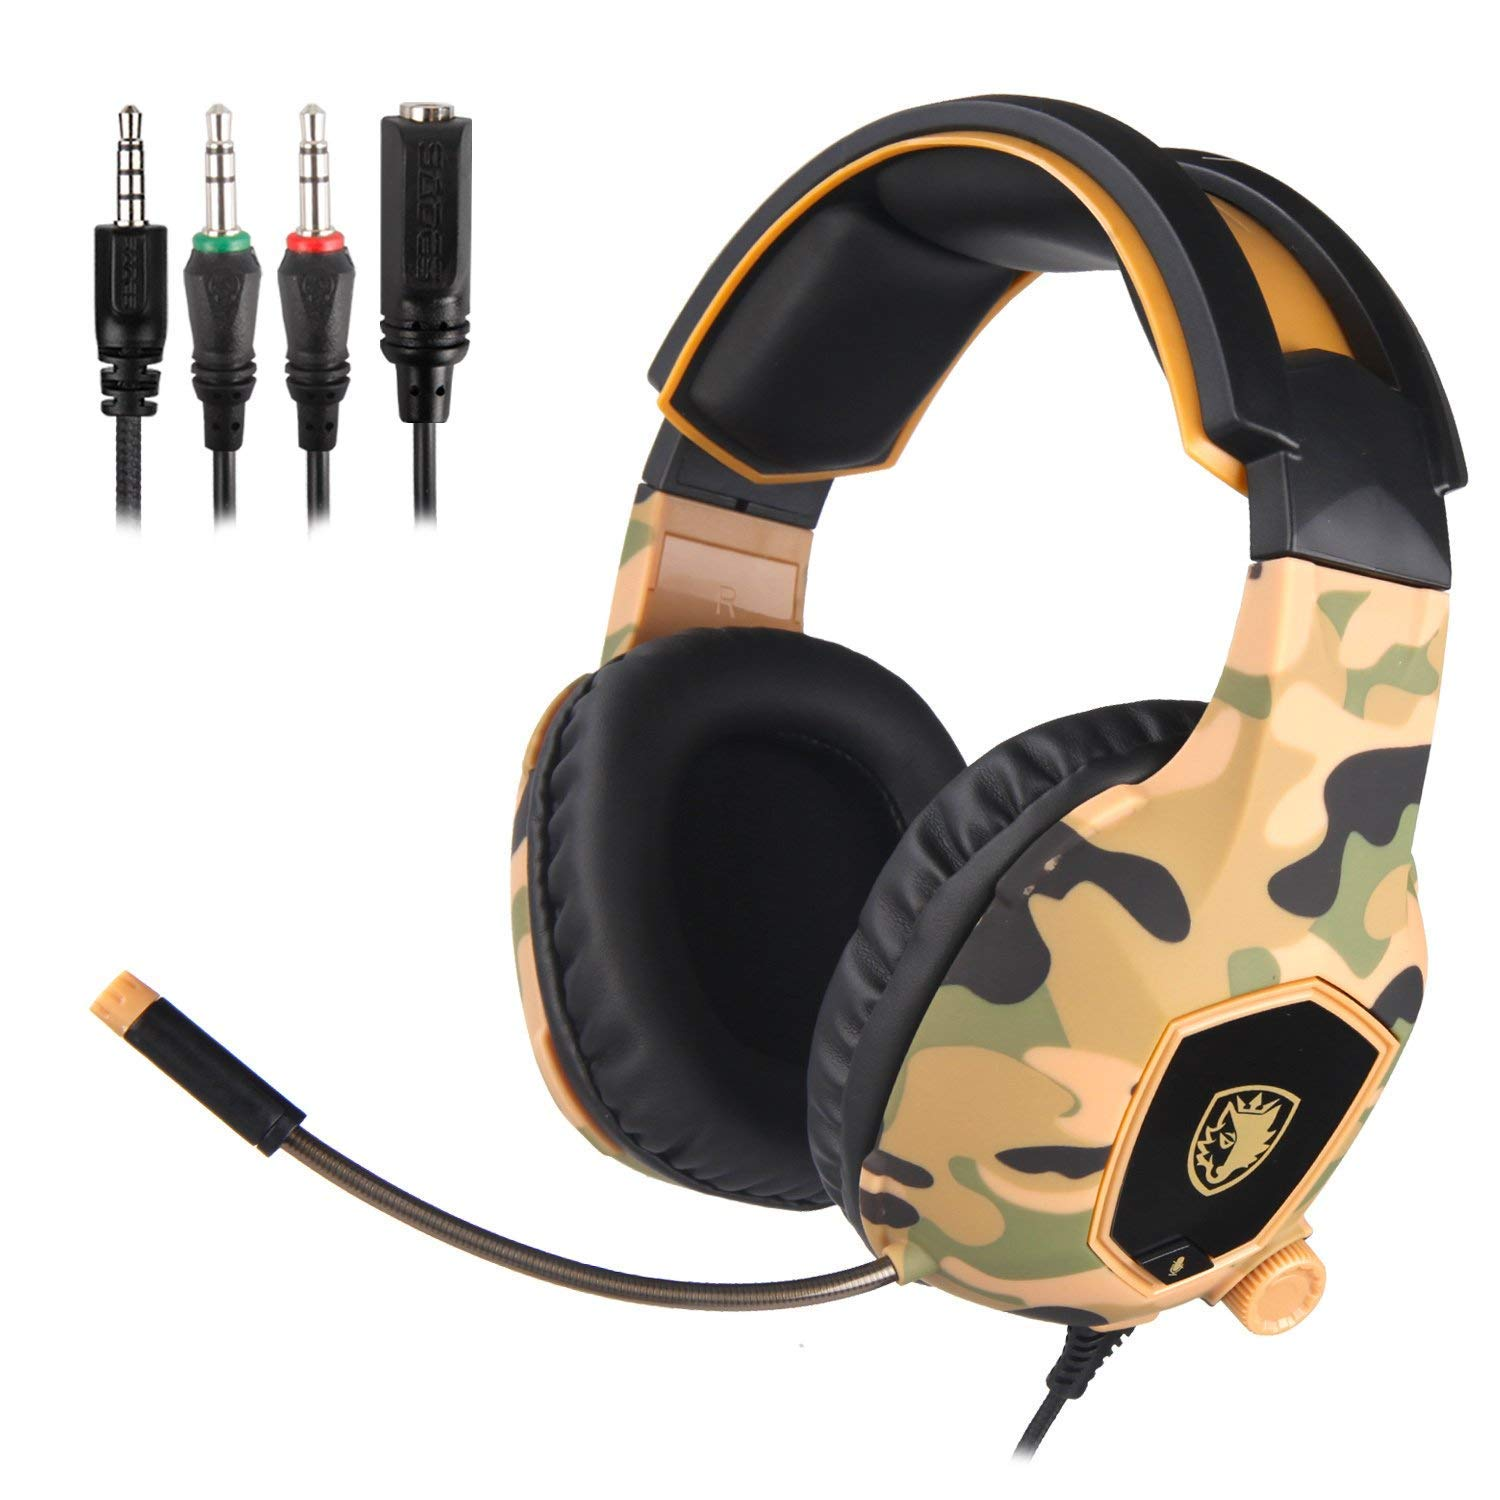 SADES SA818 Xbox one Headset 3.5mm Stereo Wired Over Ear Gaming Headset with Mic, Noise Cancelling and Volume Control for New Xbox One PC Mac PS4 Table Phone Camouflage